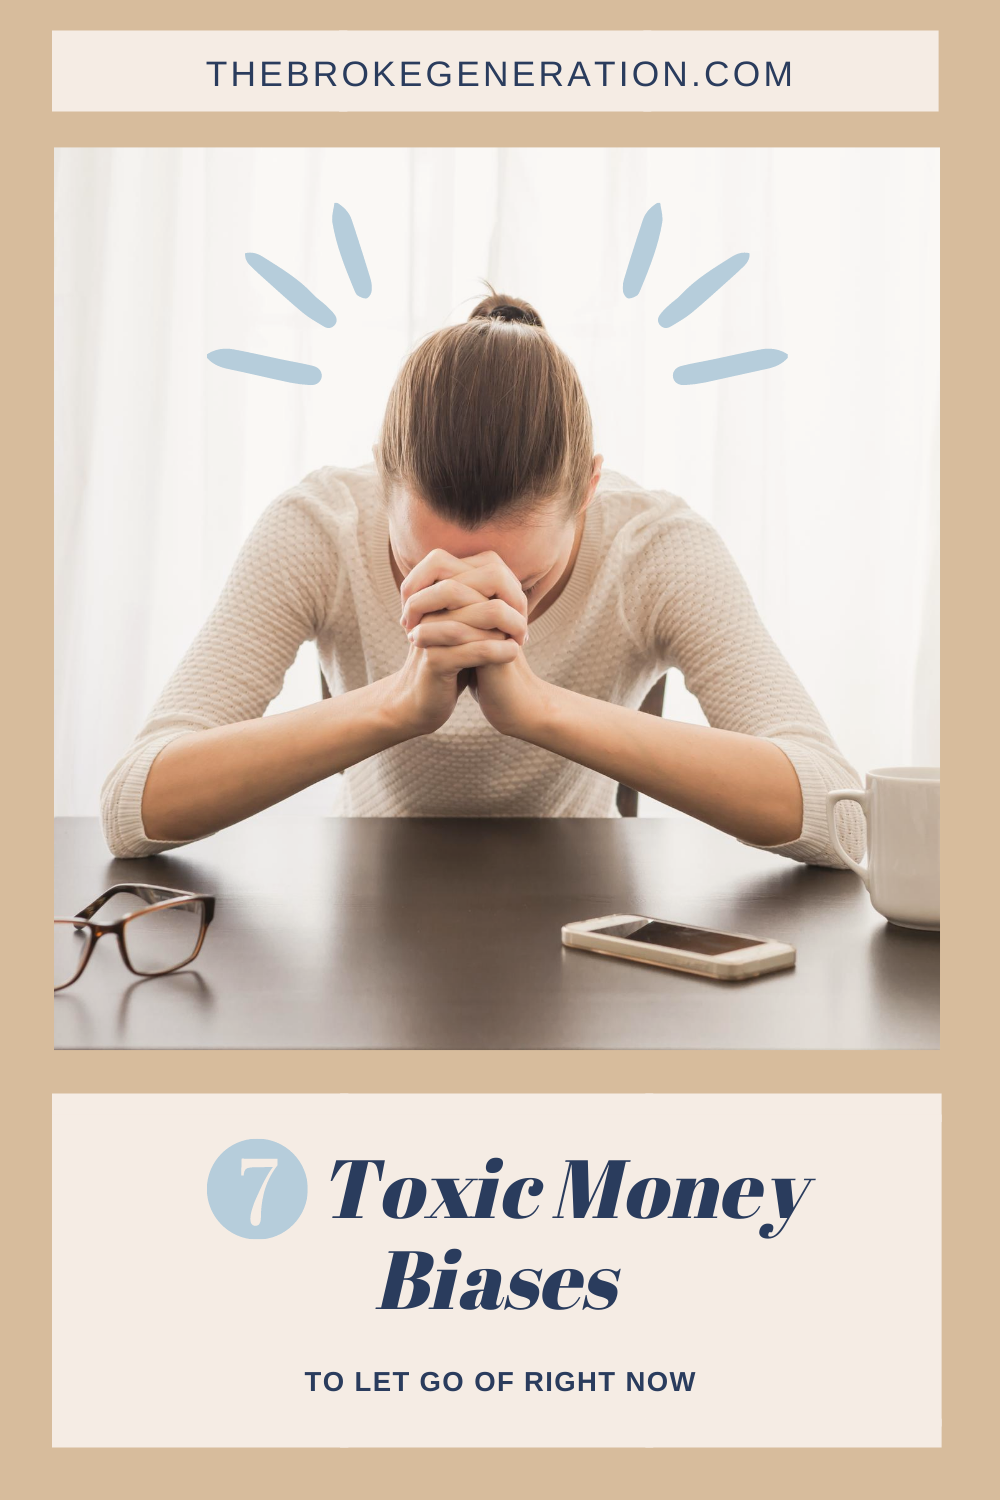 7 Toxic Money Biases to Let Go of Right Now